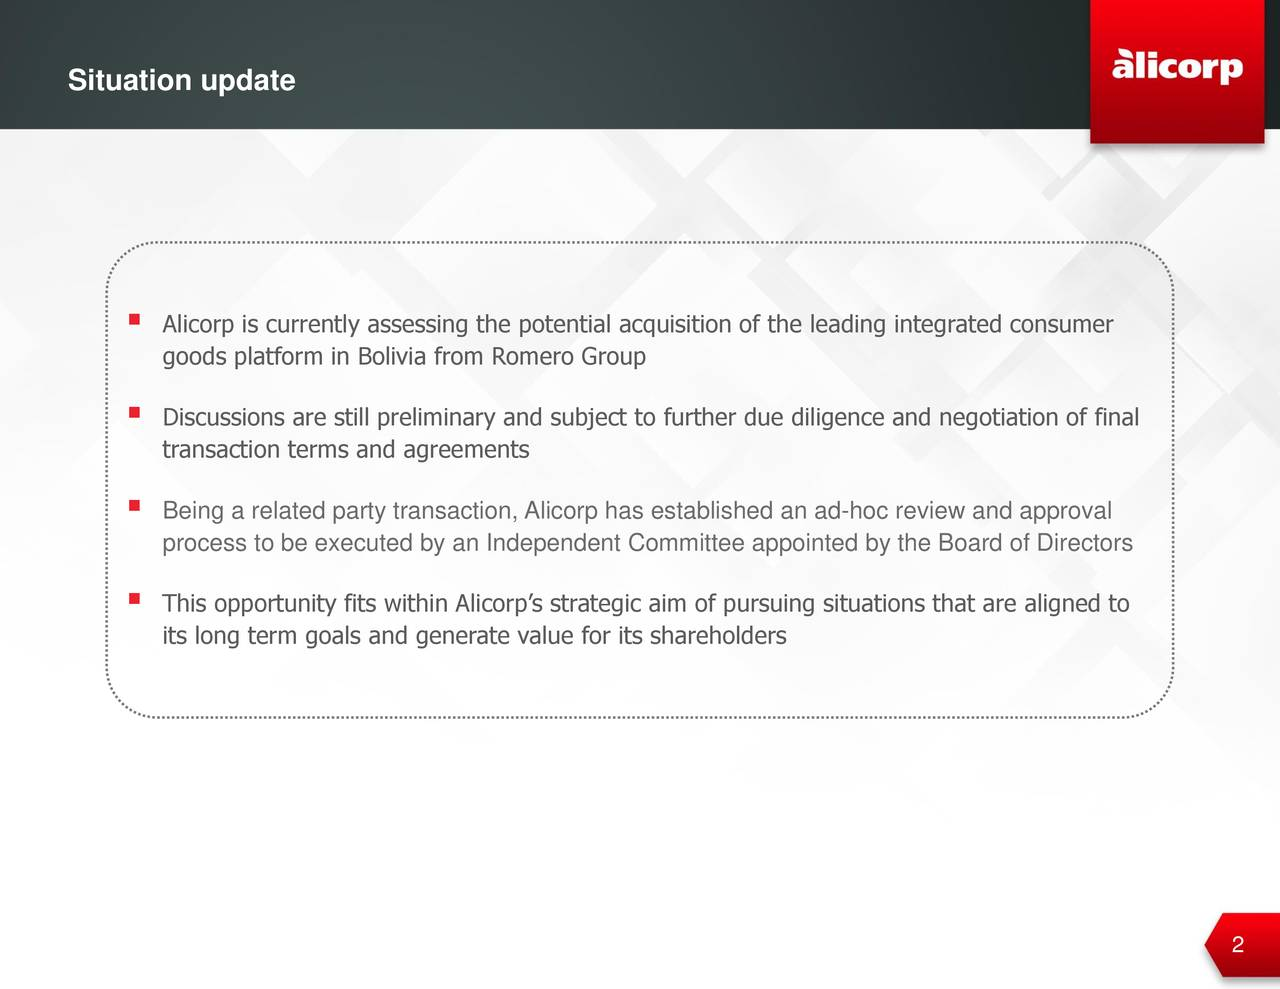 Situation update 119.16.28 75.23.22  Alicorp is currently assessing the potential acquisition of the leading integrated consumer goods platform in Bolivia from Romero Group 198.198.198  Discussions are still preliminary and subject to further due diligence and negotiation of final transaction terms and agreements 117.117.117  Being a related party transaction, Alicorp has established an ad-hoc review and approval process to be executed by an Independent Committee appointed by the Board of Directors 58.58.58  This opportunity fits within Alicorp's strategic aim of pursuing situations that are aligned to its long term goals and generate value for its shareholders 110.174.85 229.149.64